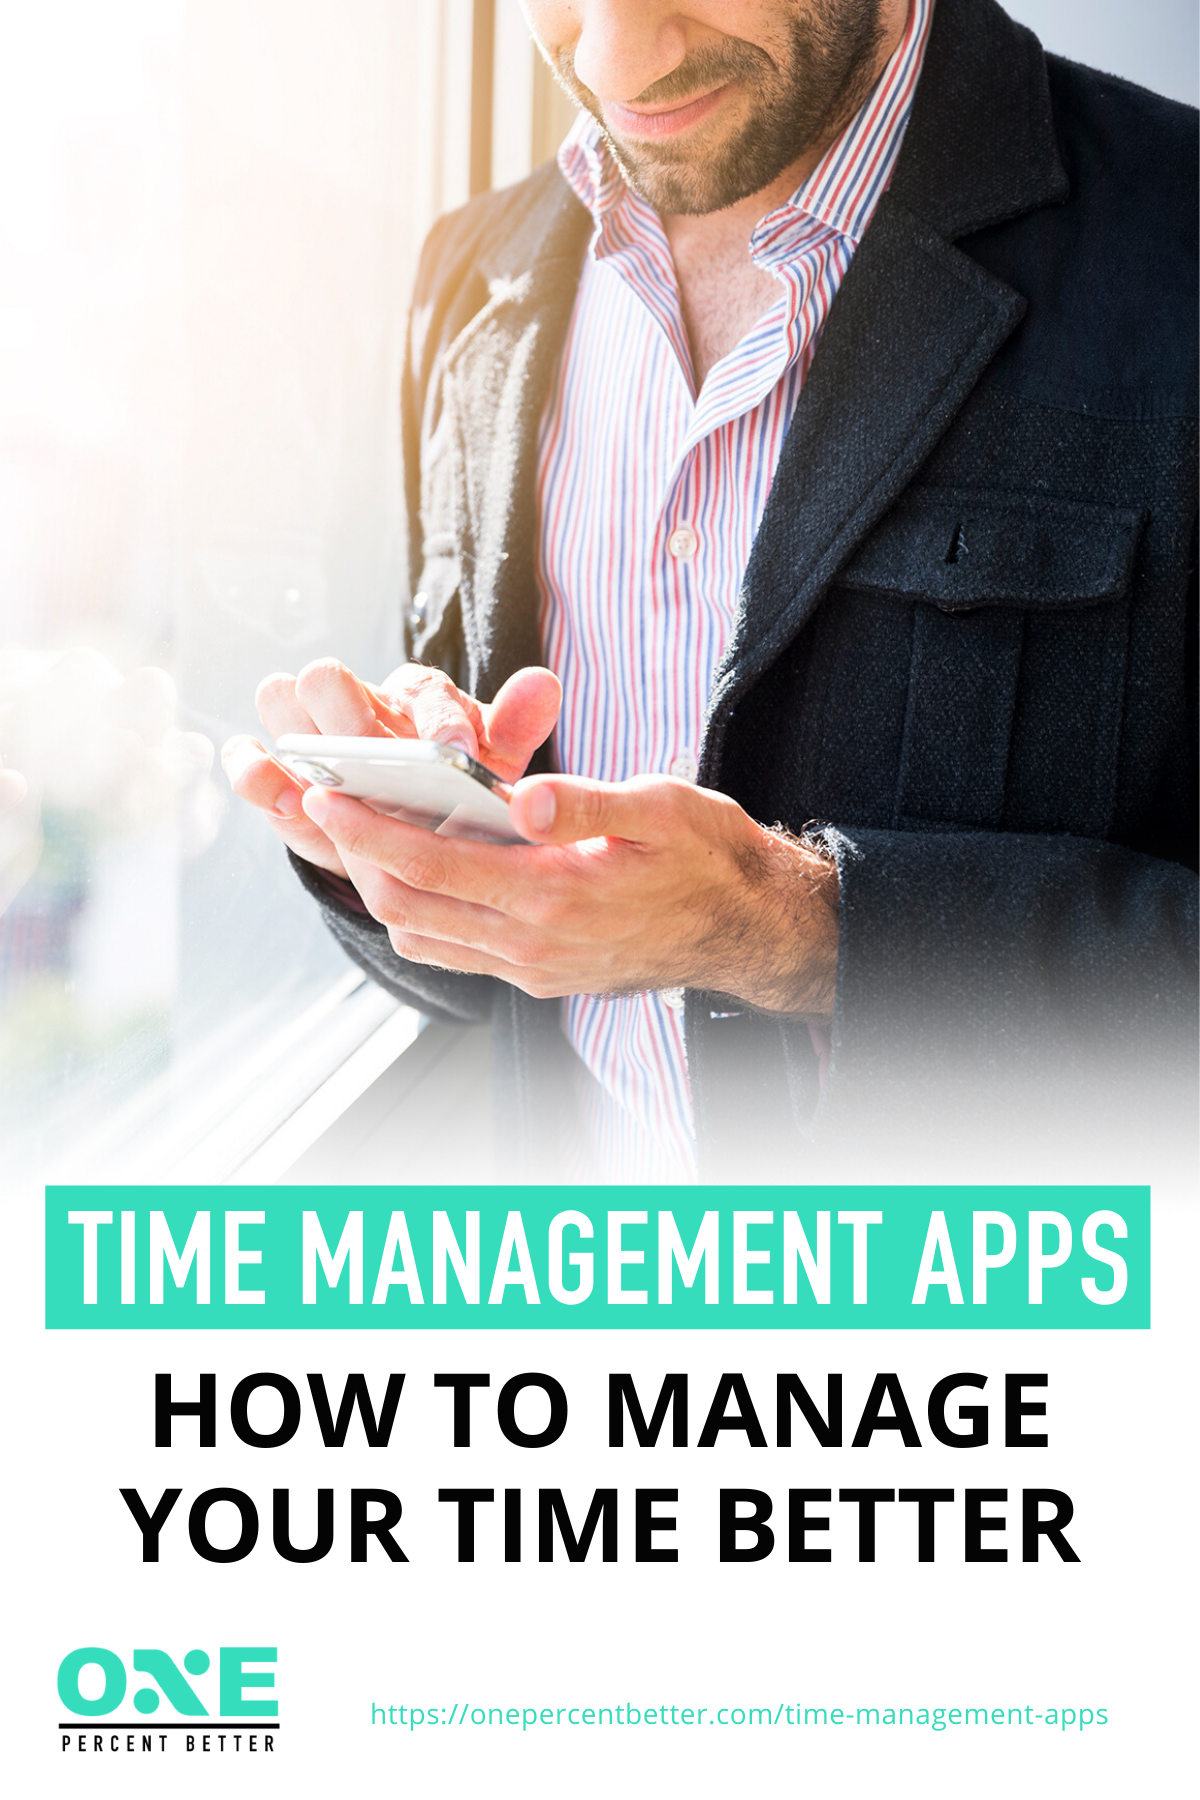 Time Management Apps: How To Manage Your Time Better https://onepercentbetter.com/time-management-apps